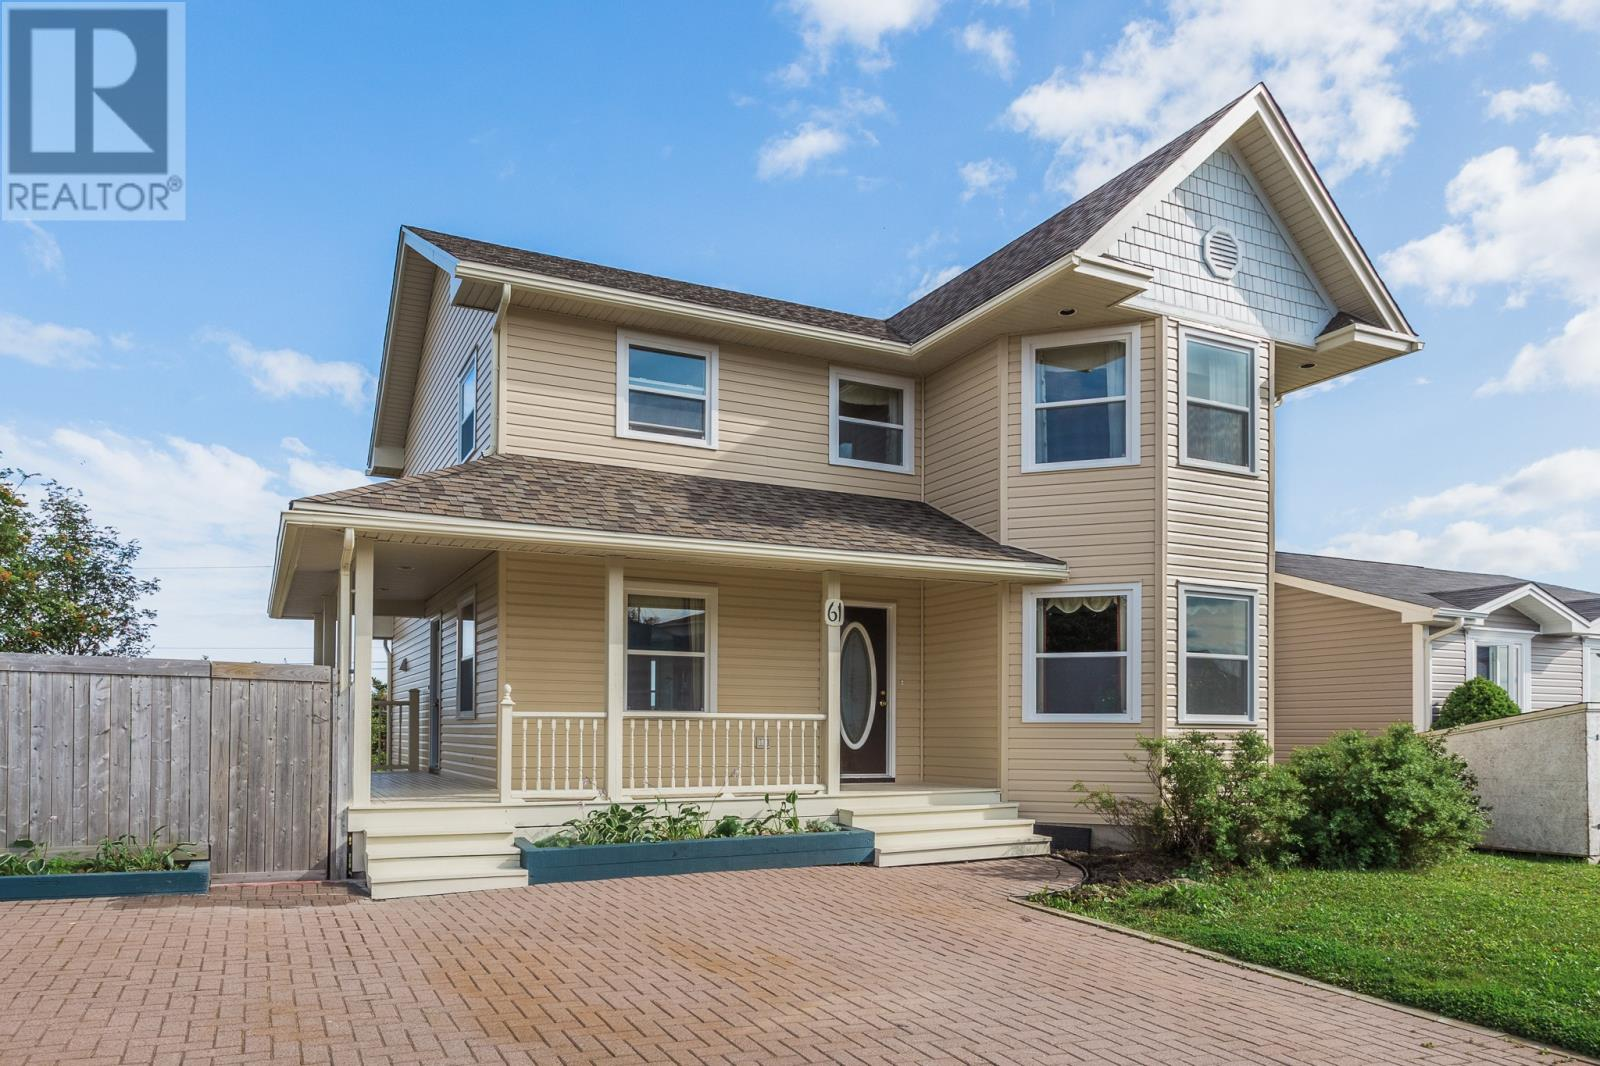 Removed: 61 Frecker Drive, St Johns, NL - Removed on 2019-12-18 06:42:16